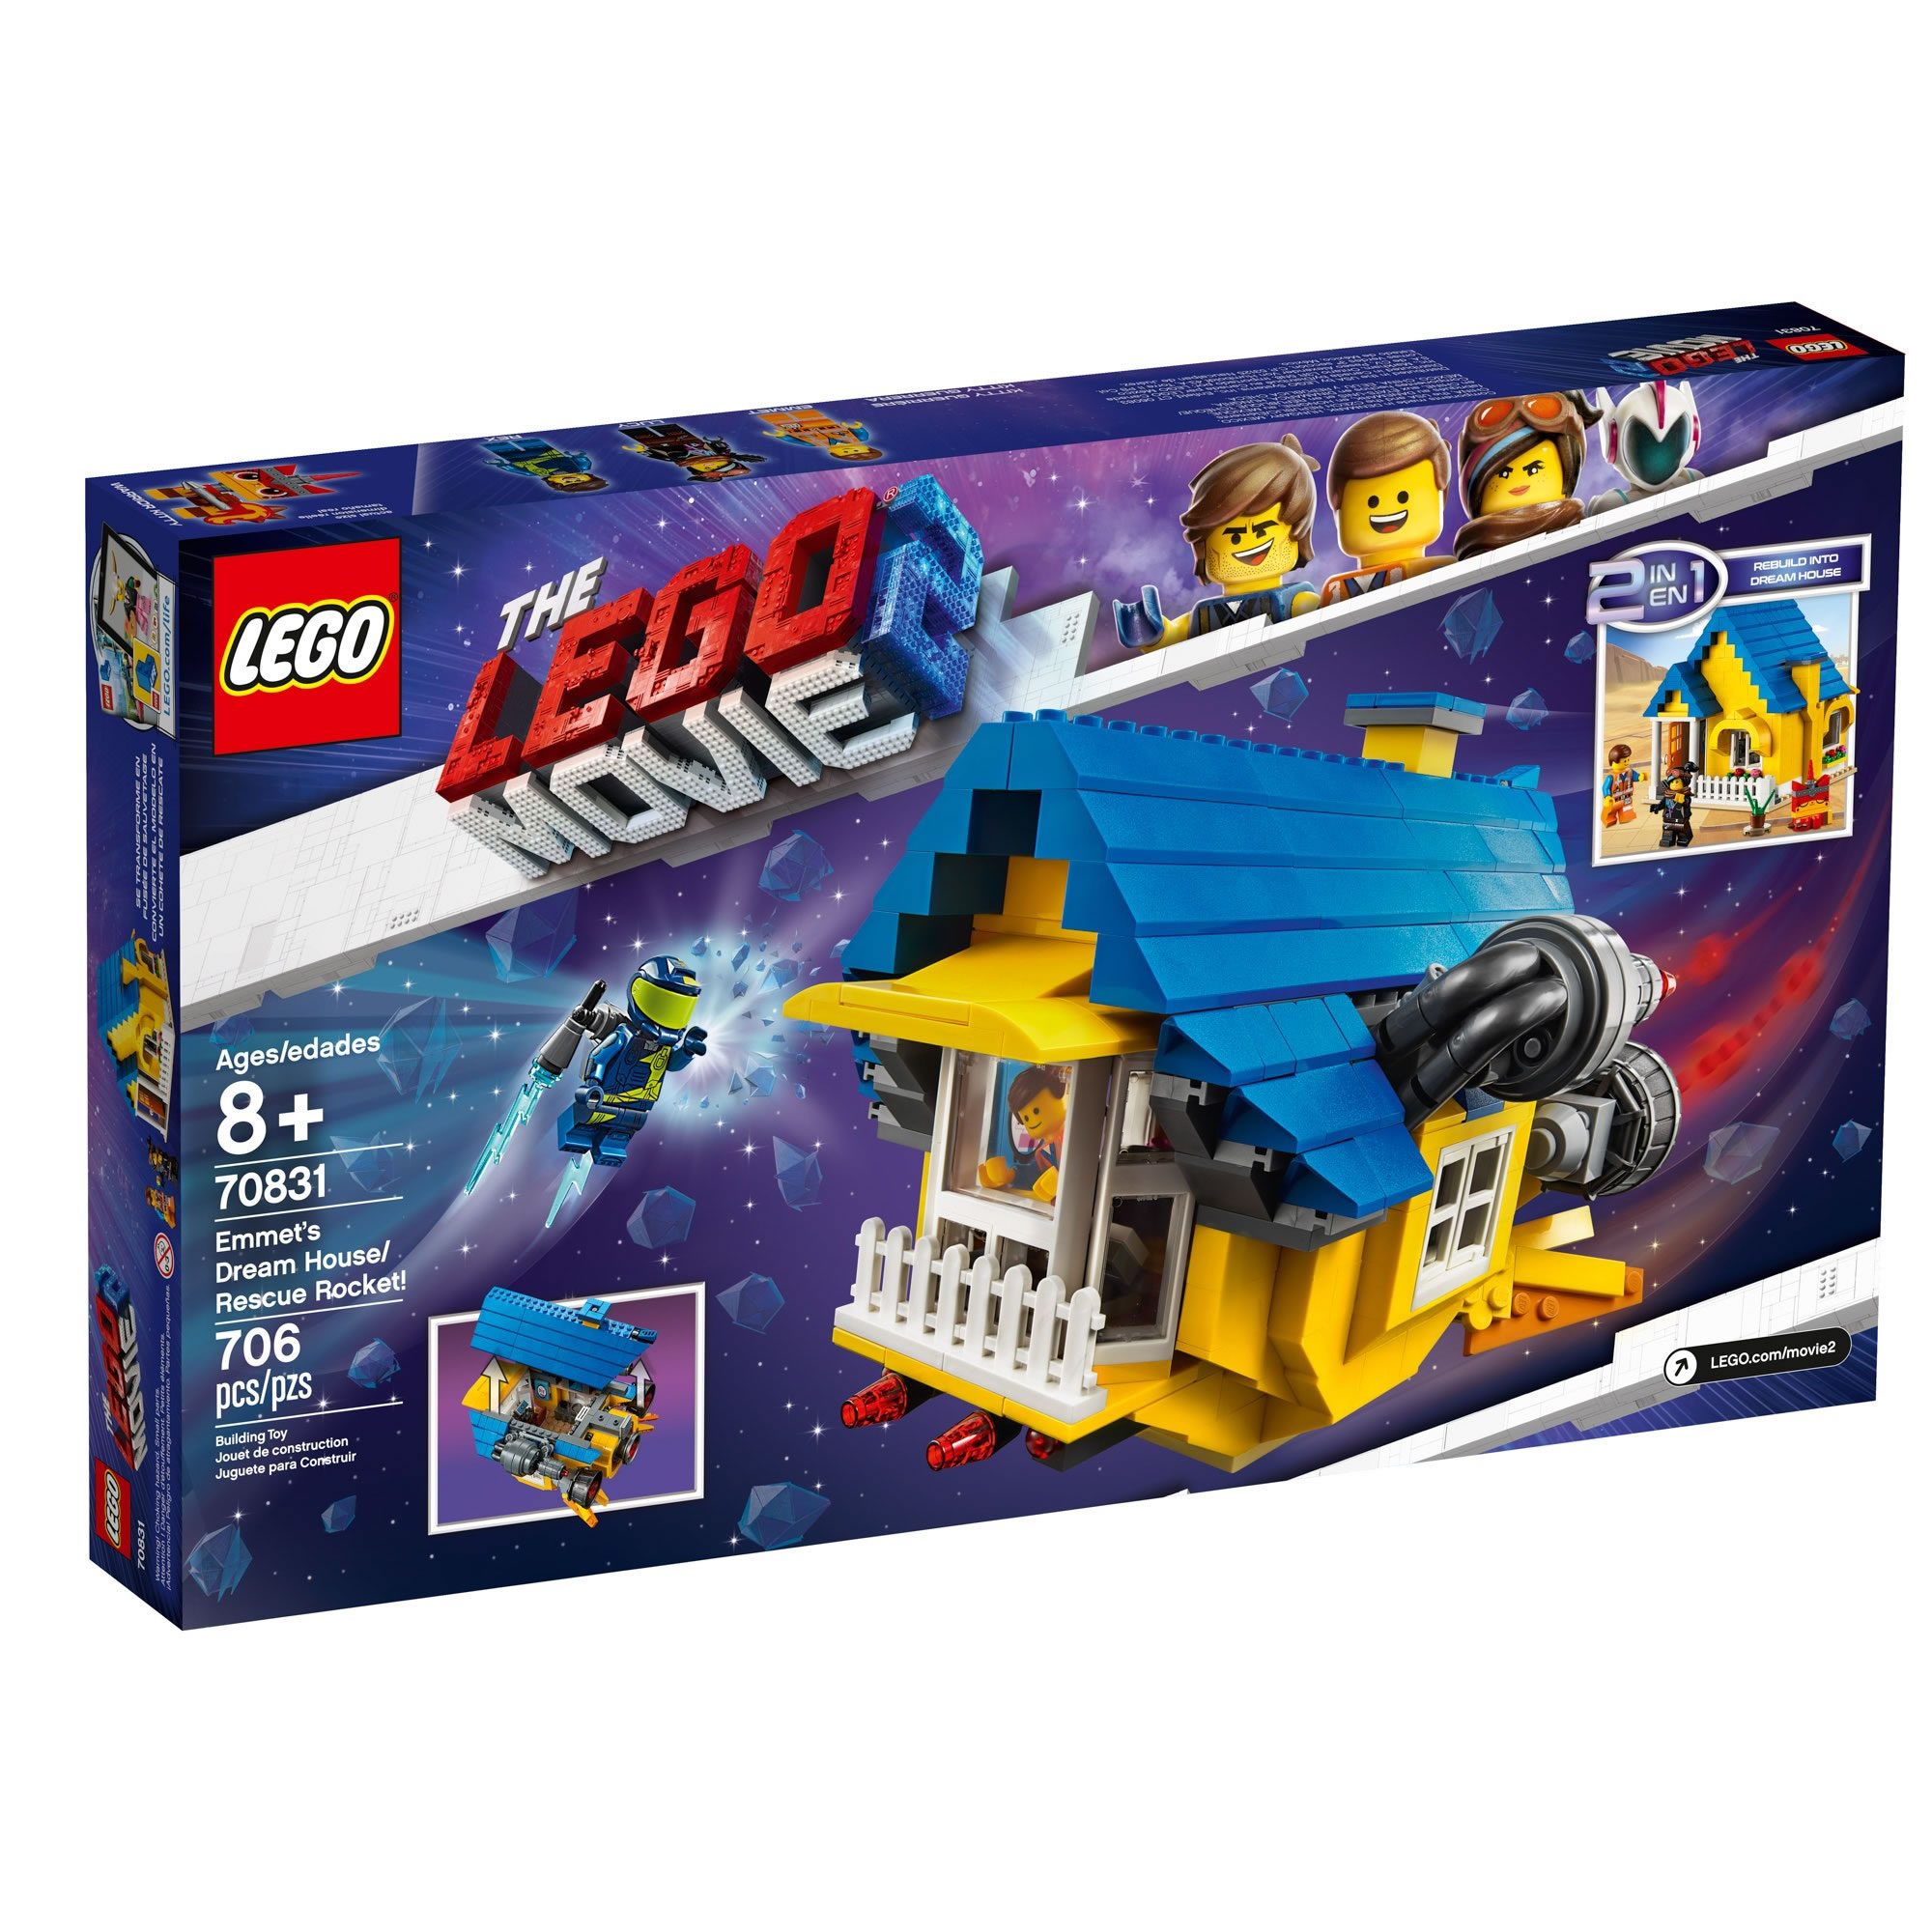 the-lego-movie-2-emmets-dream-house-and-rescue-rocket-70831-box-2-1-2019 zusammengebaut.com